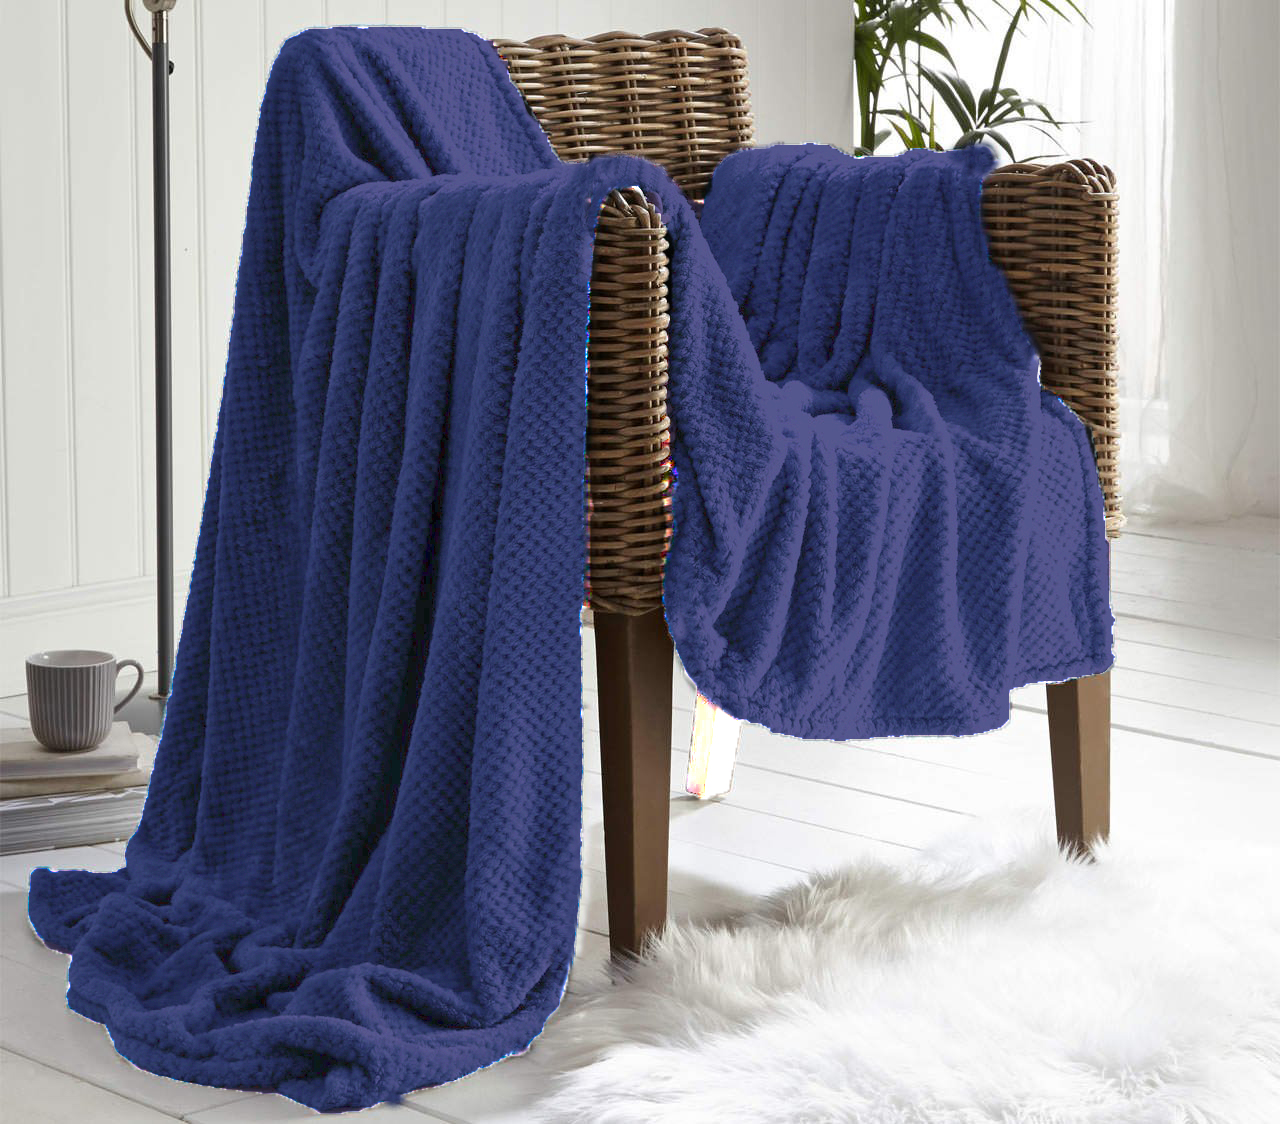 Waffle Throws And Blankets For Your Comfort De Lavish